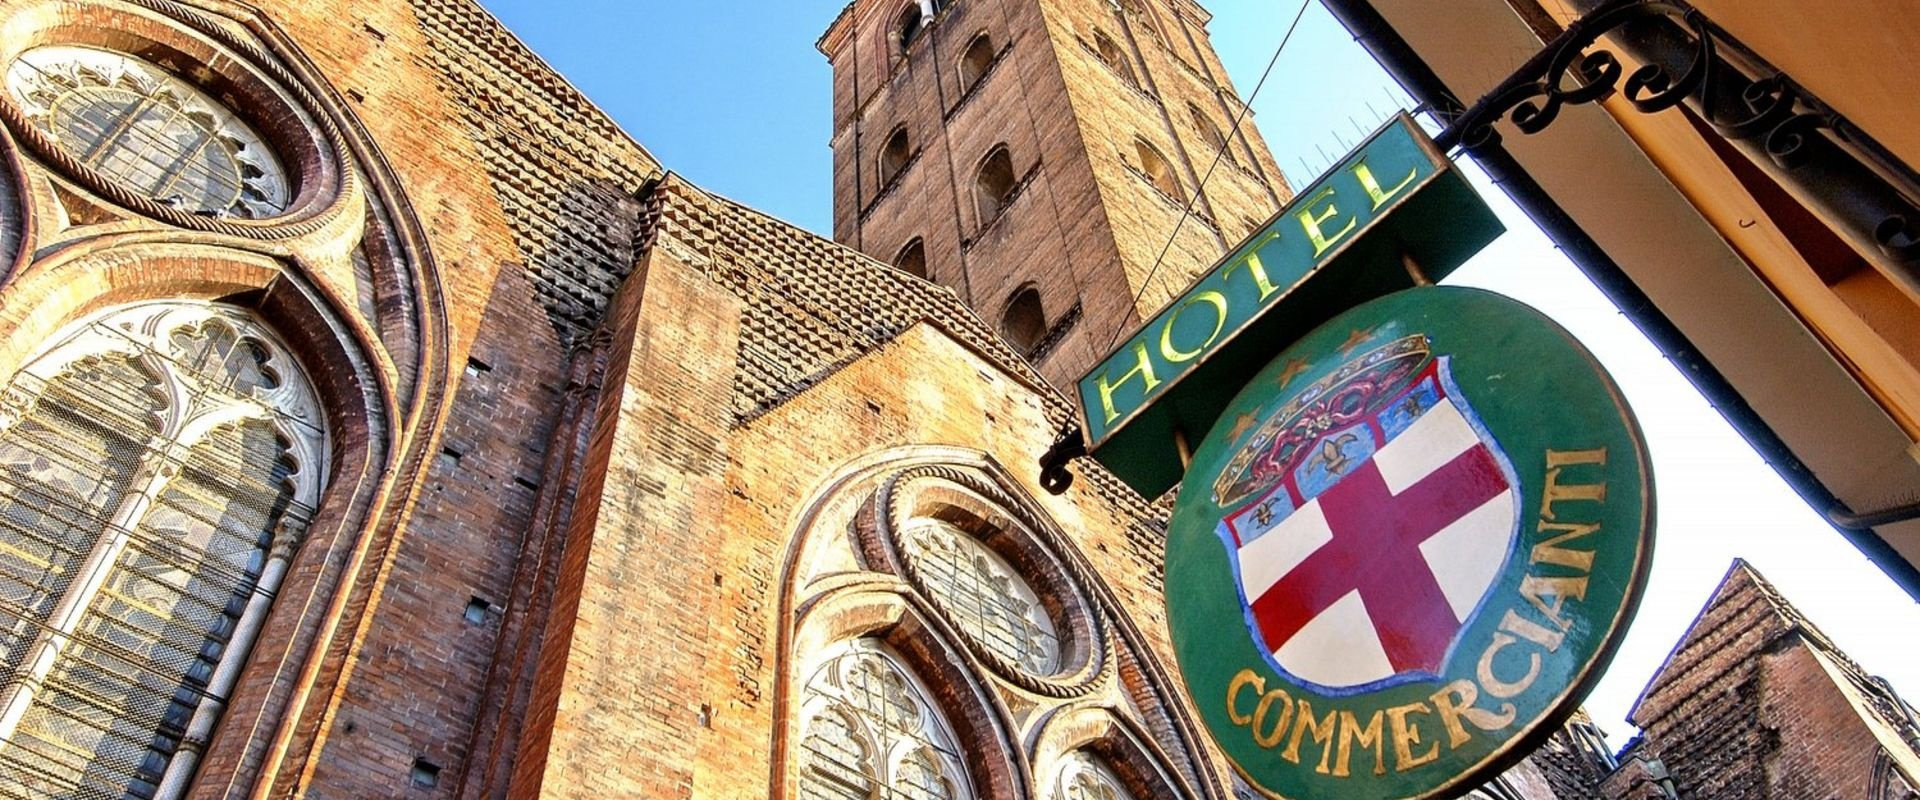 The charm of a historic building  art hotel commercianti bologna